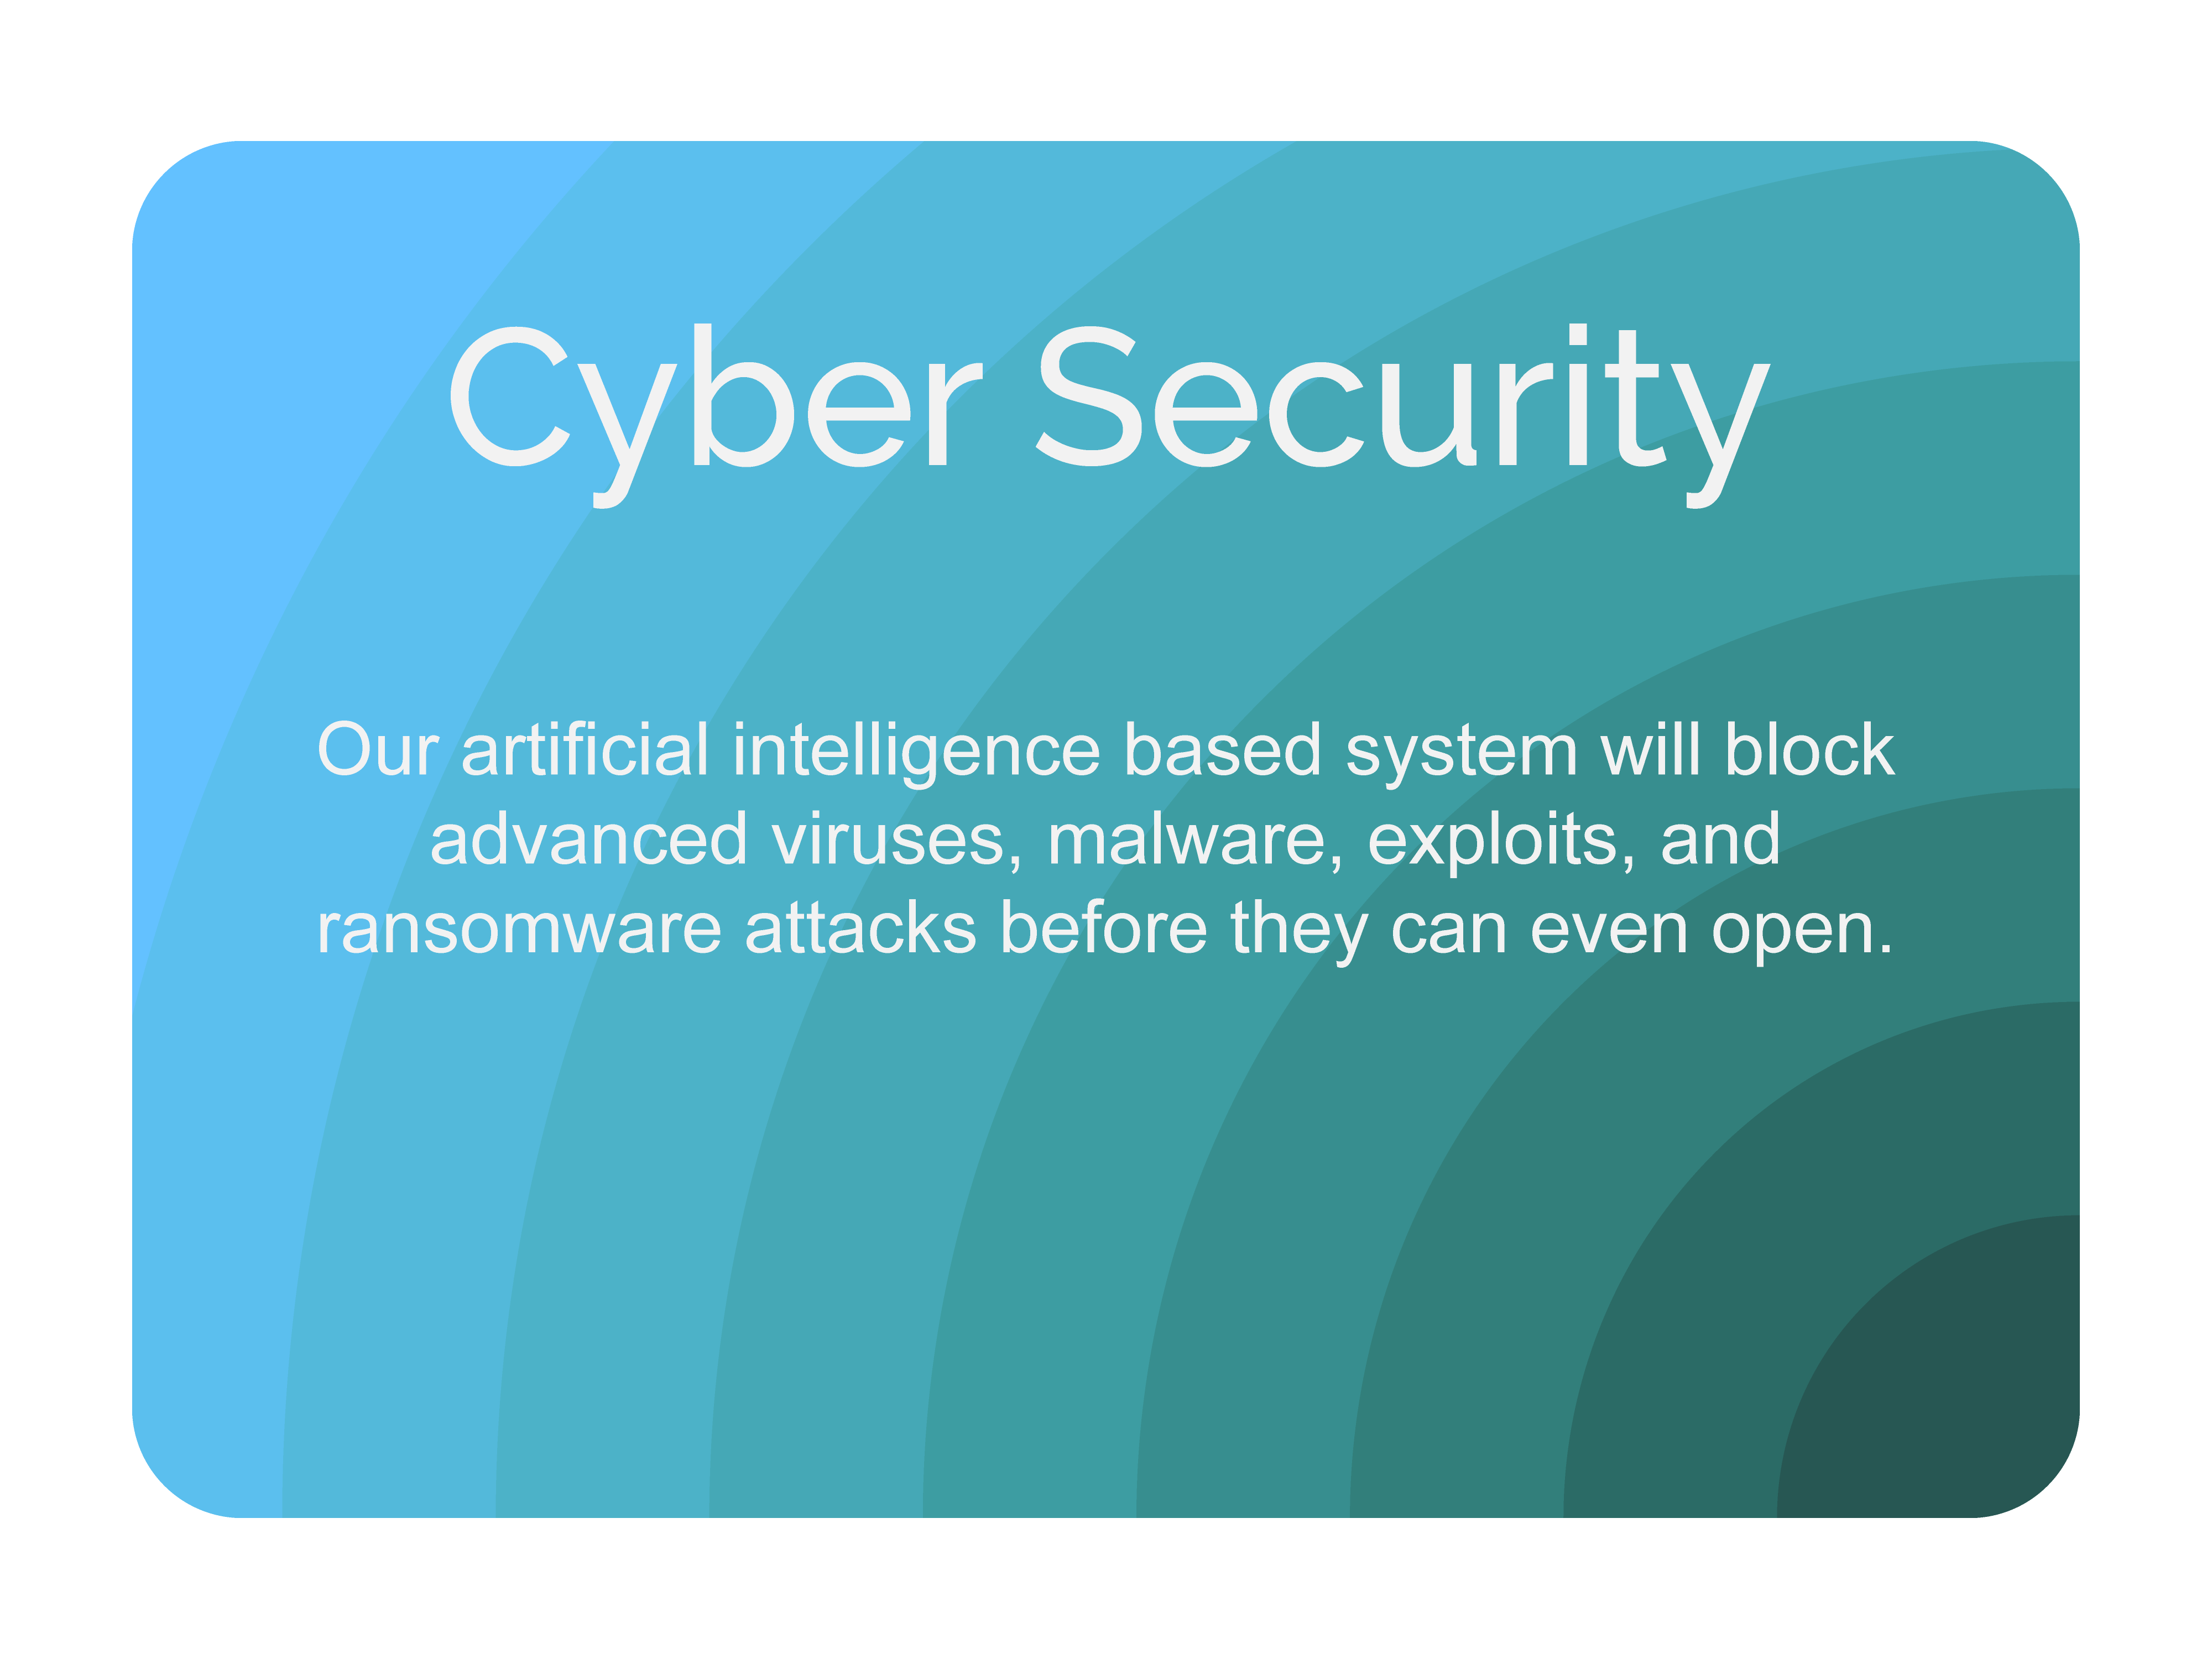 Cyber Security Banner